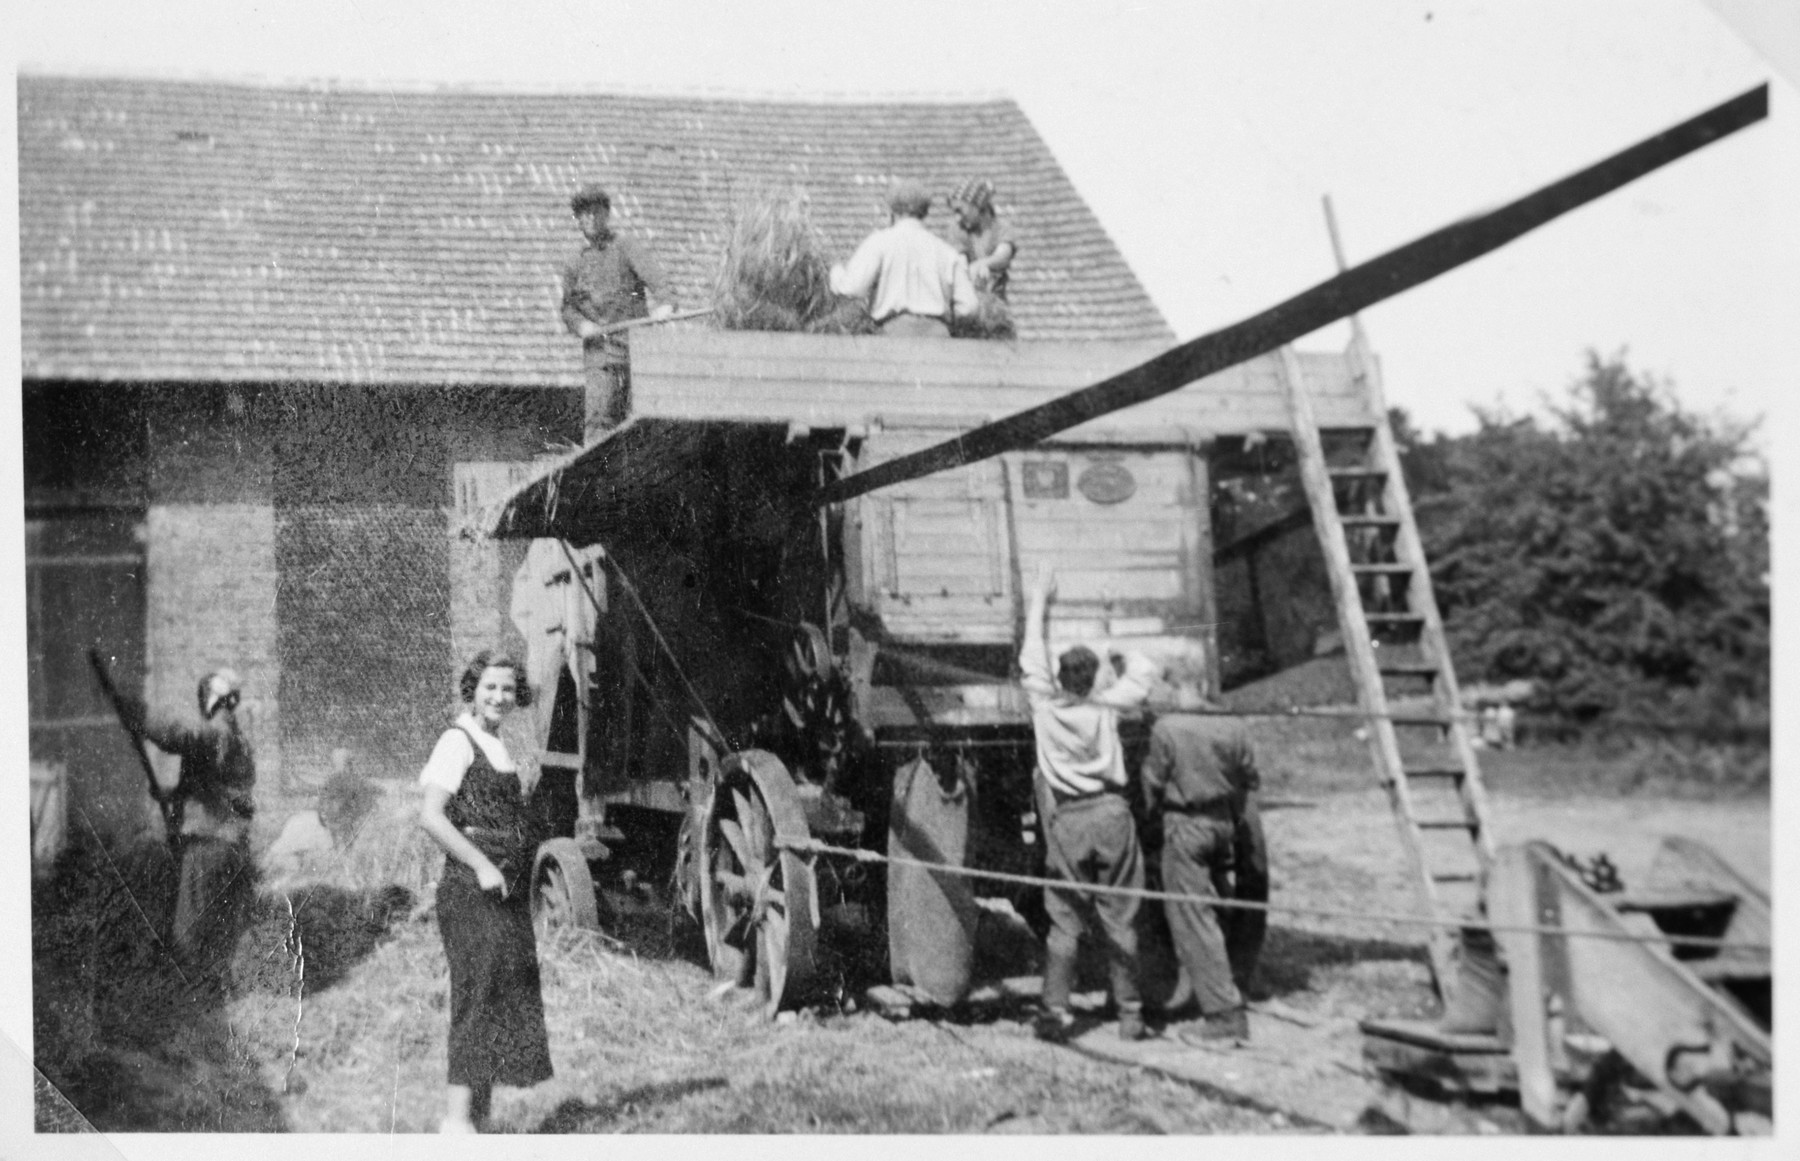 Jewish youth from the Gross Breesen vocational center unloads hay from a cart.